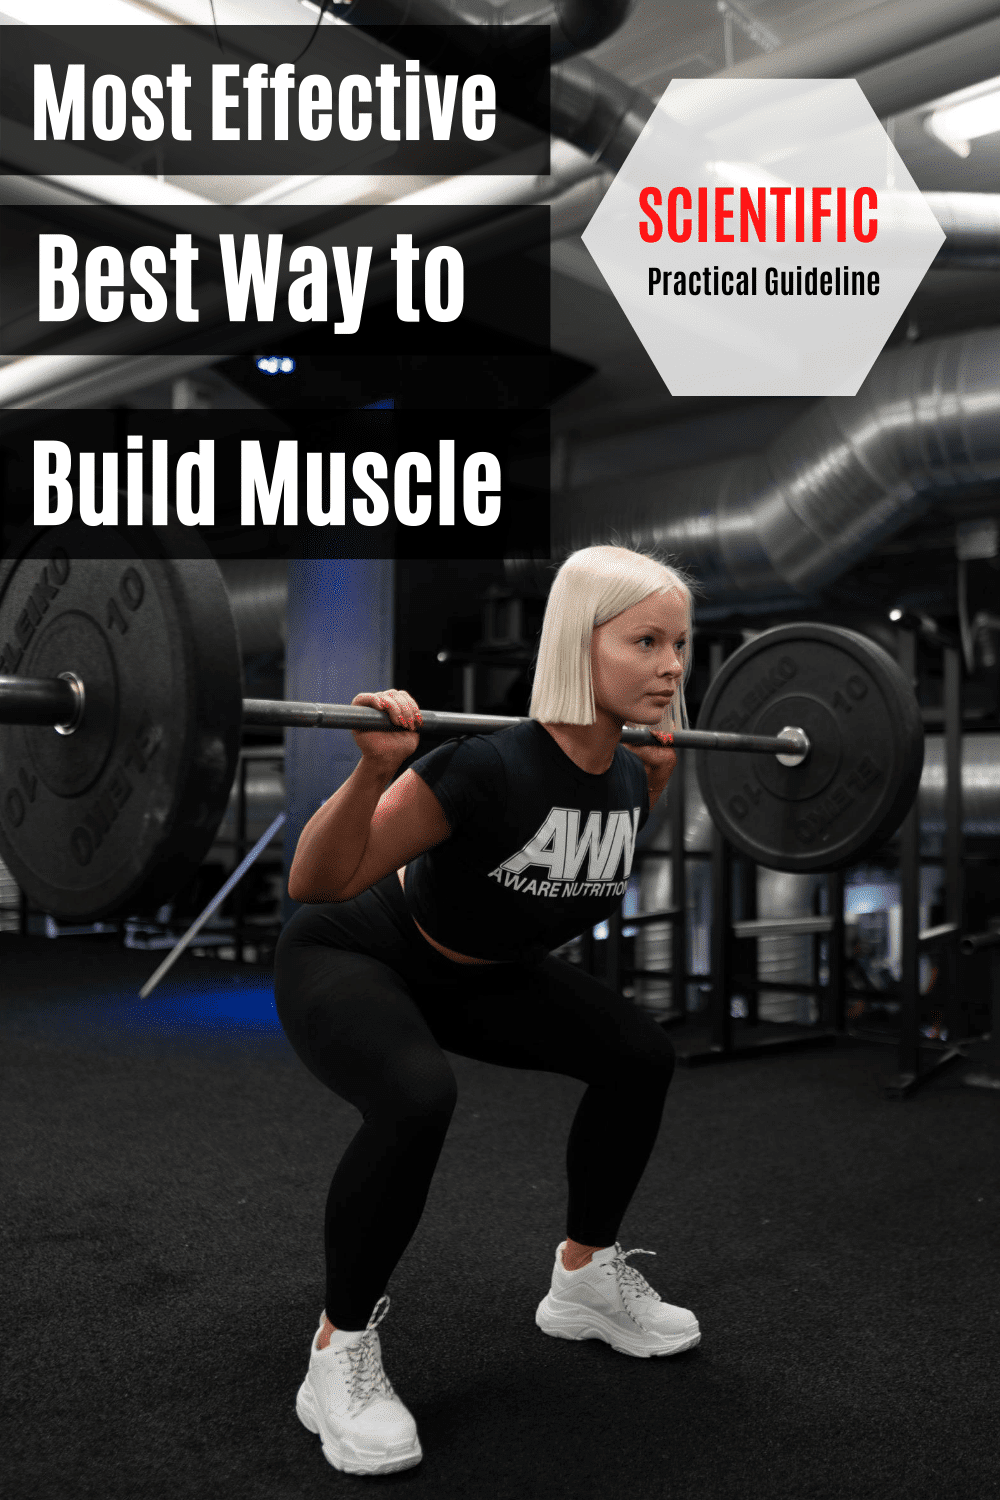 The Most Effective and Best Way to Build Muscle that Lasts